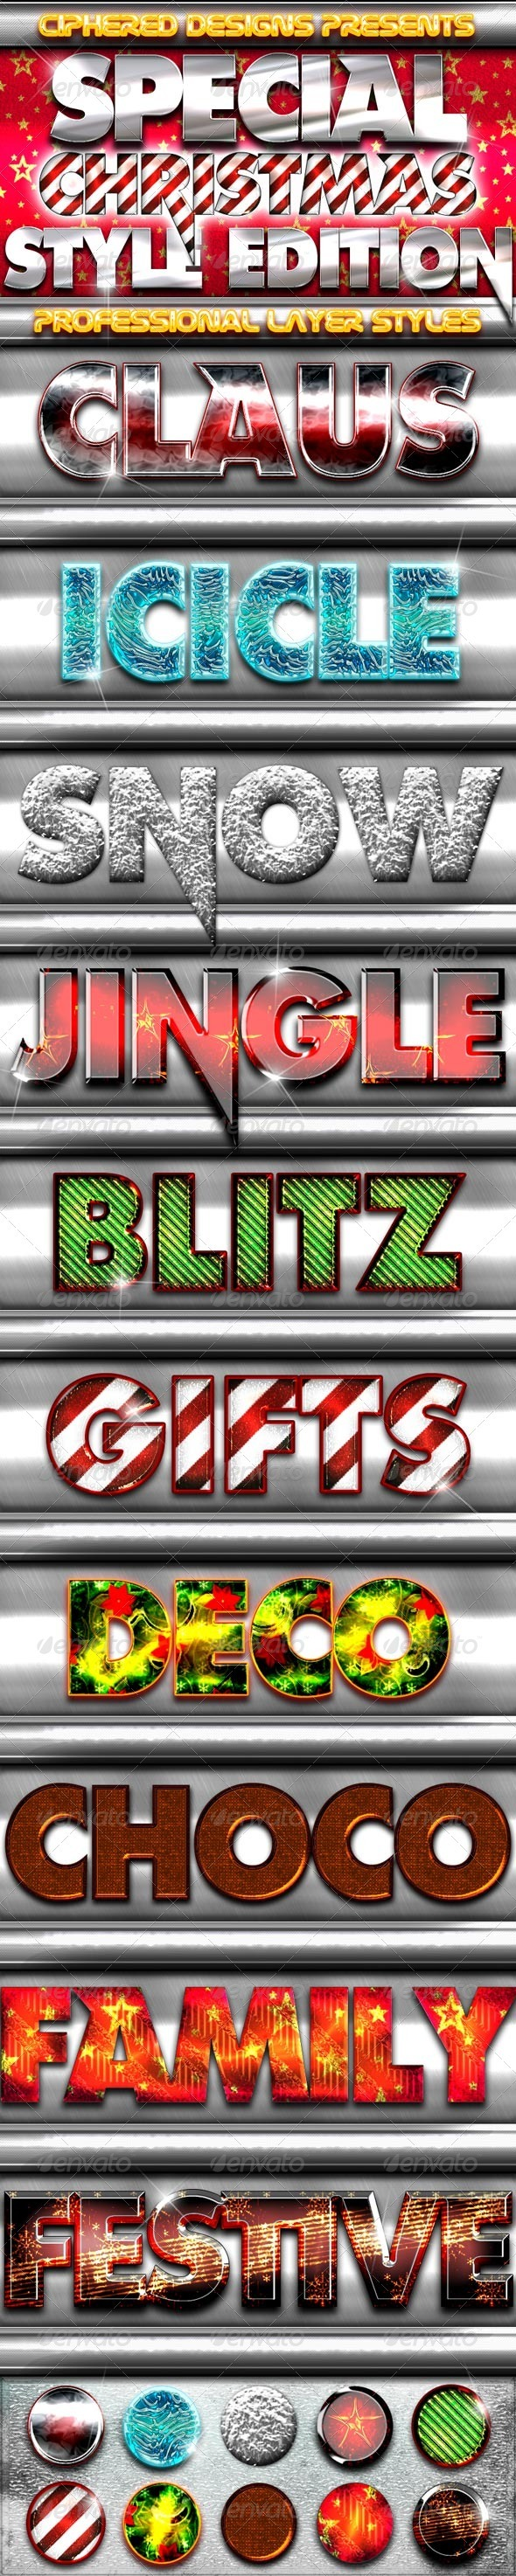 Special - Christmas Style Edition - Text Effects Styles